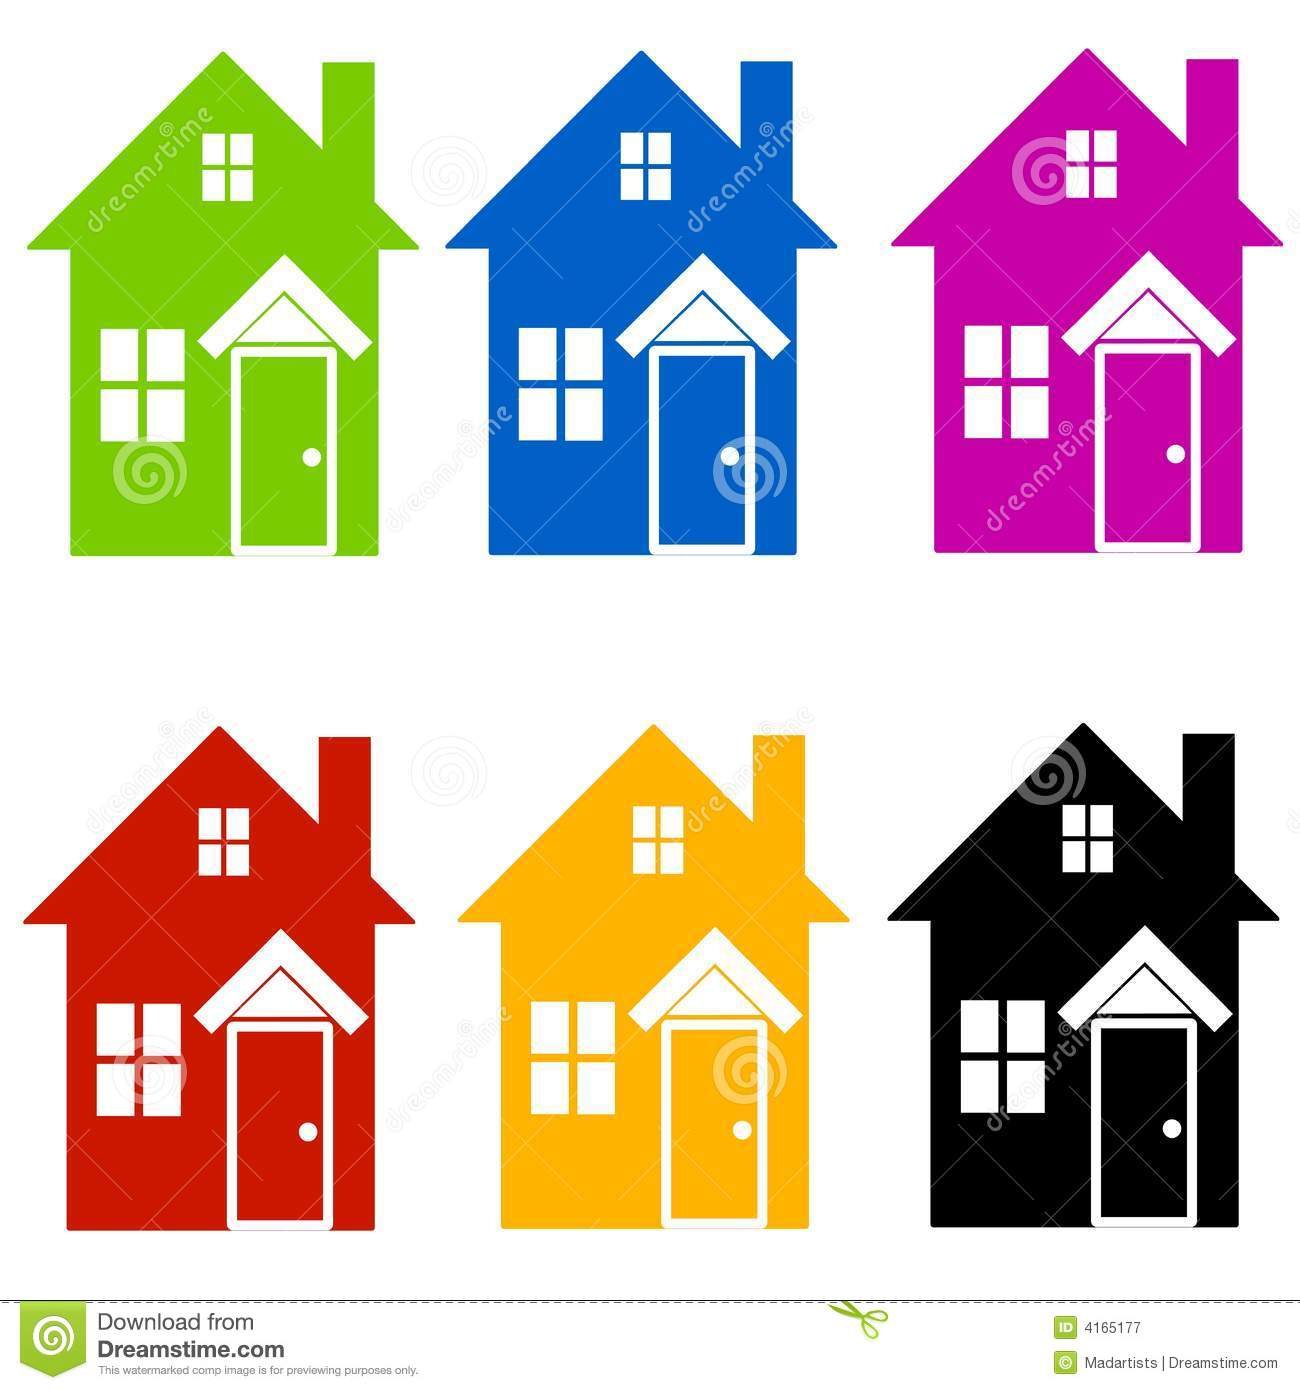 colourful house silhouettes clip art stock illustration rh dreamstime com  gingerbread house images clipart